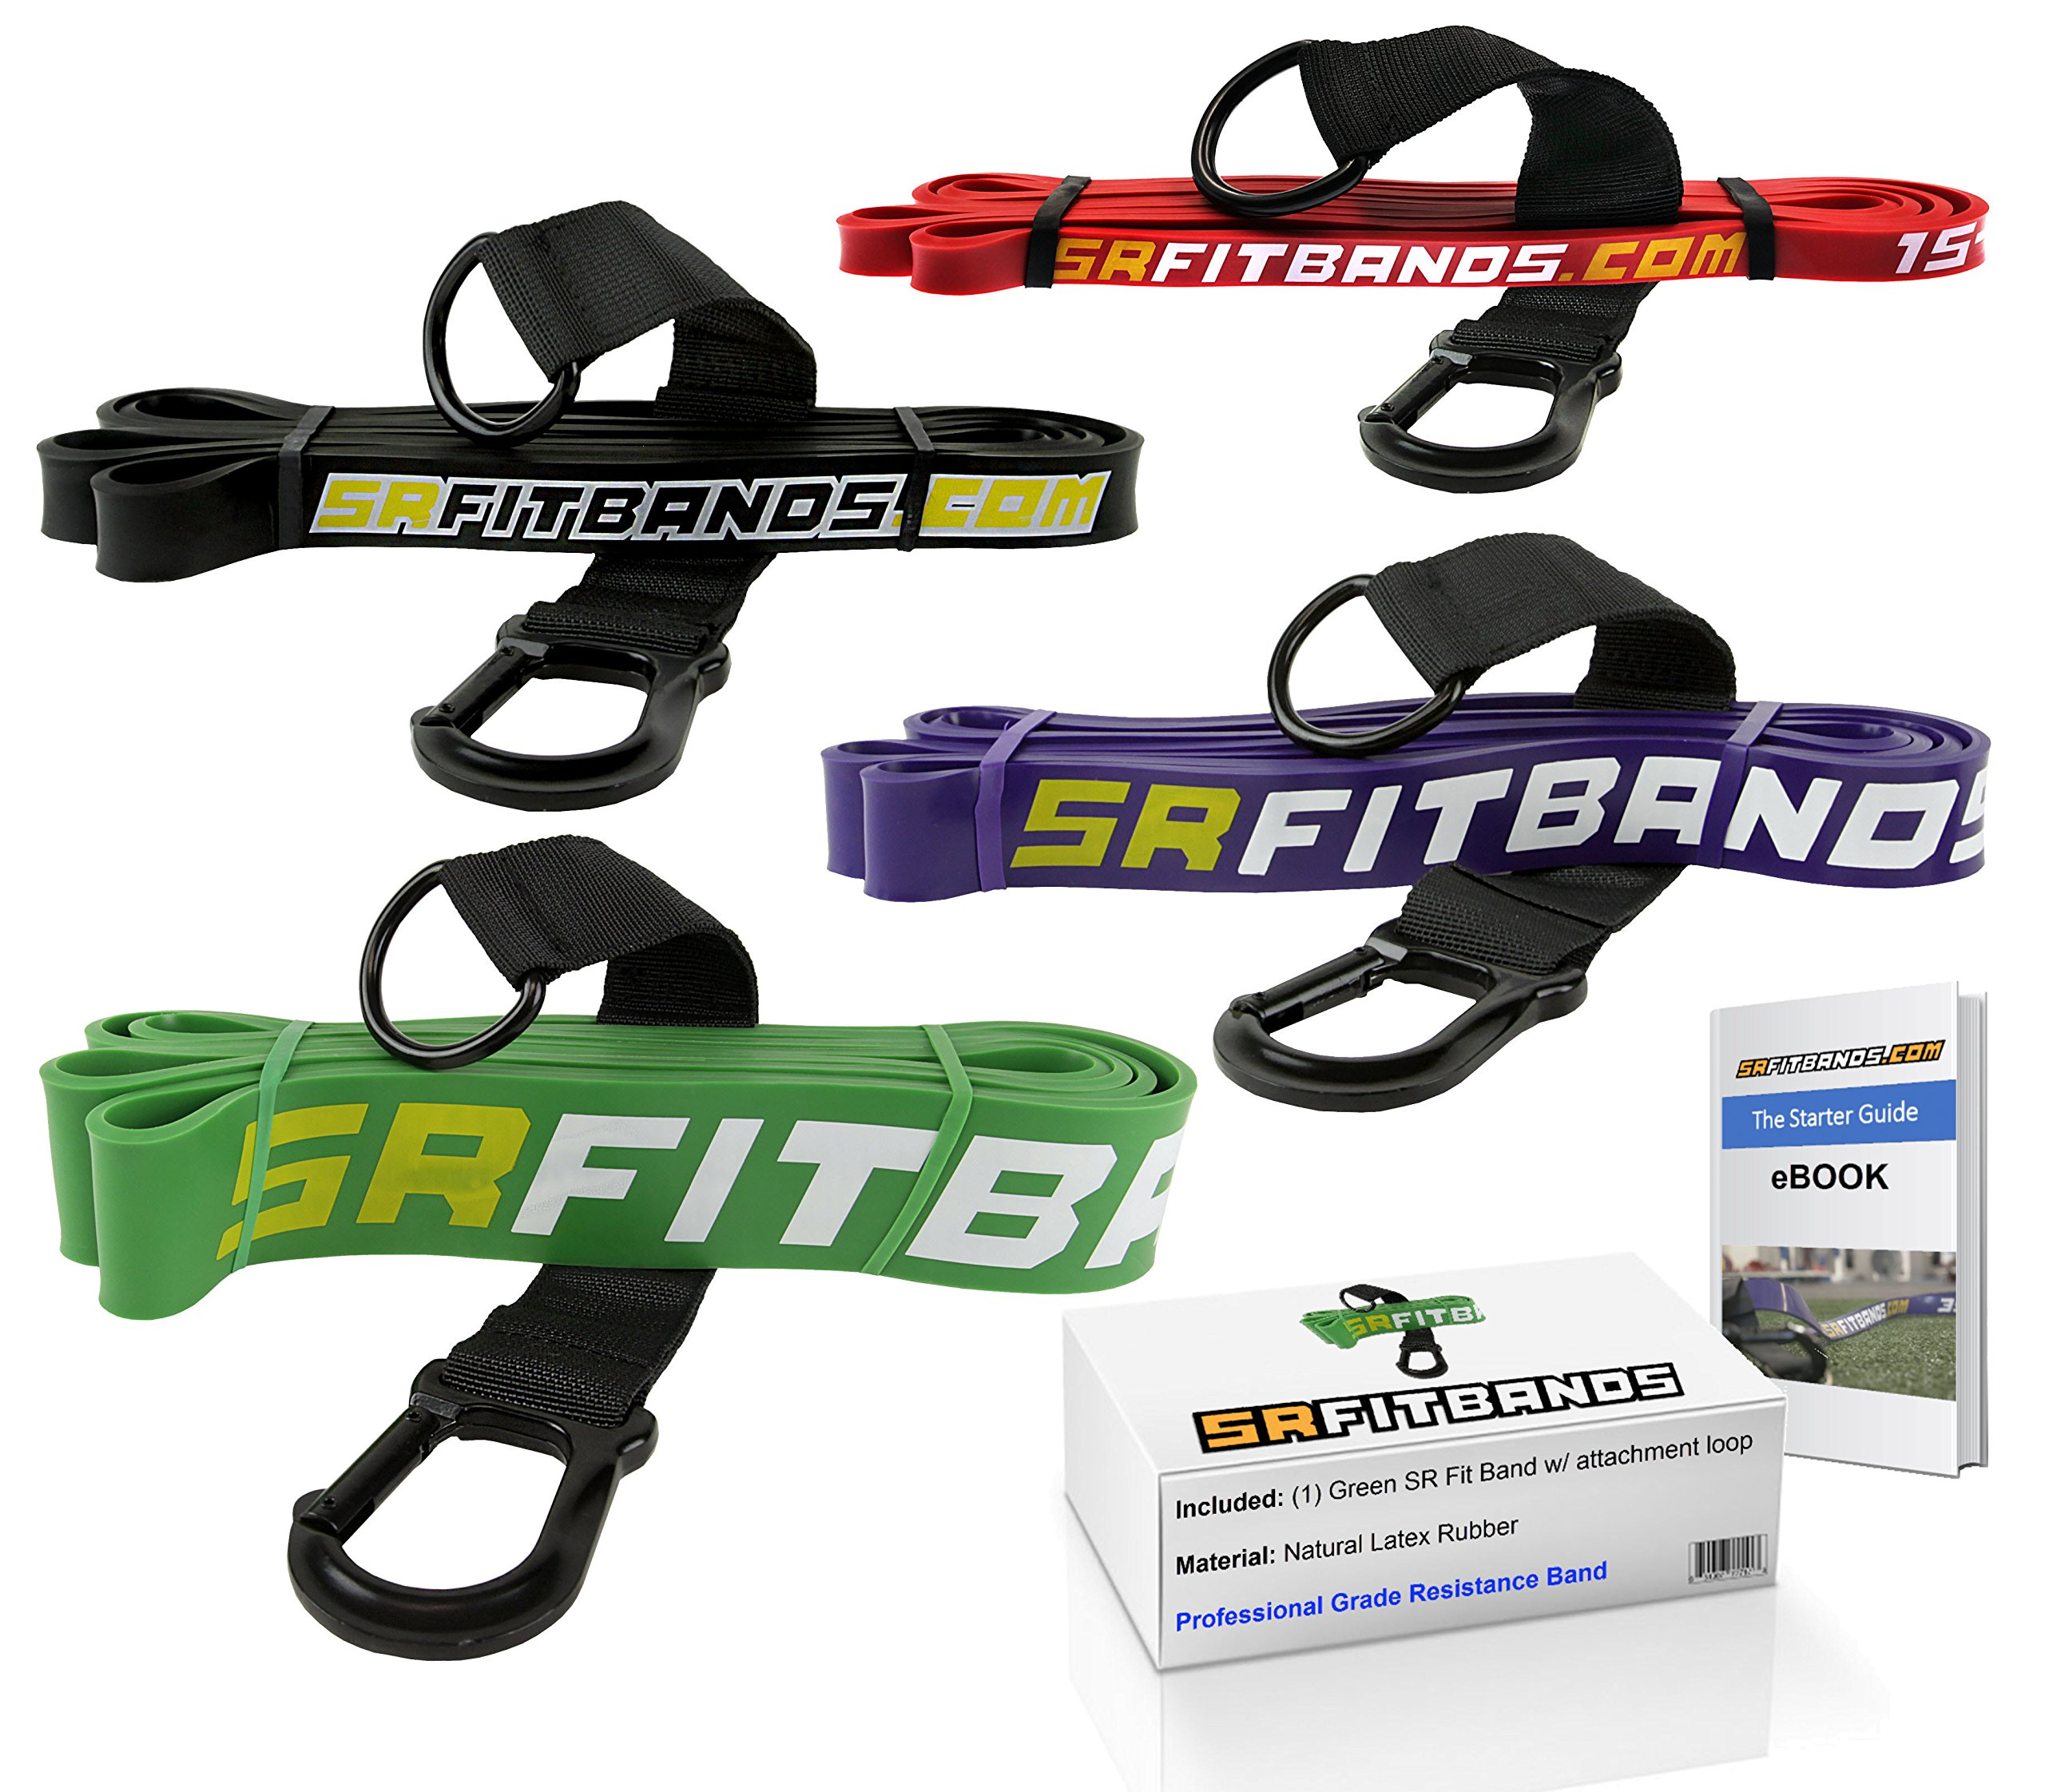 Resistance Band   Exercise Band   Fitness band: featuring the SR fit band attachment loop   Single Resistance Band - 41'' loop (Green   50-125 lbs)